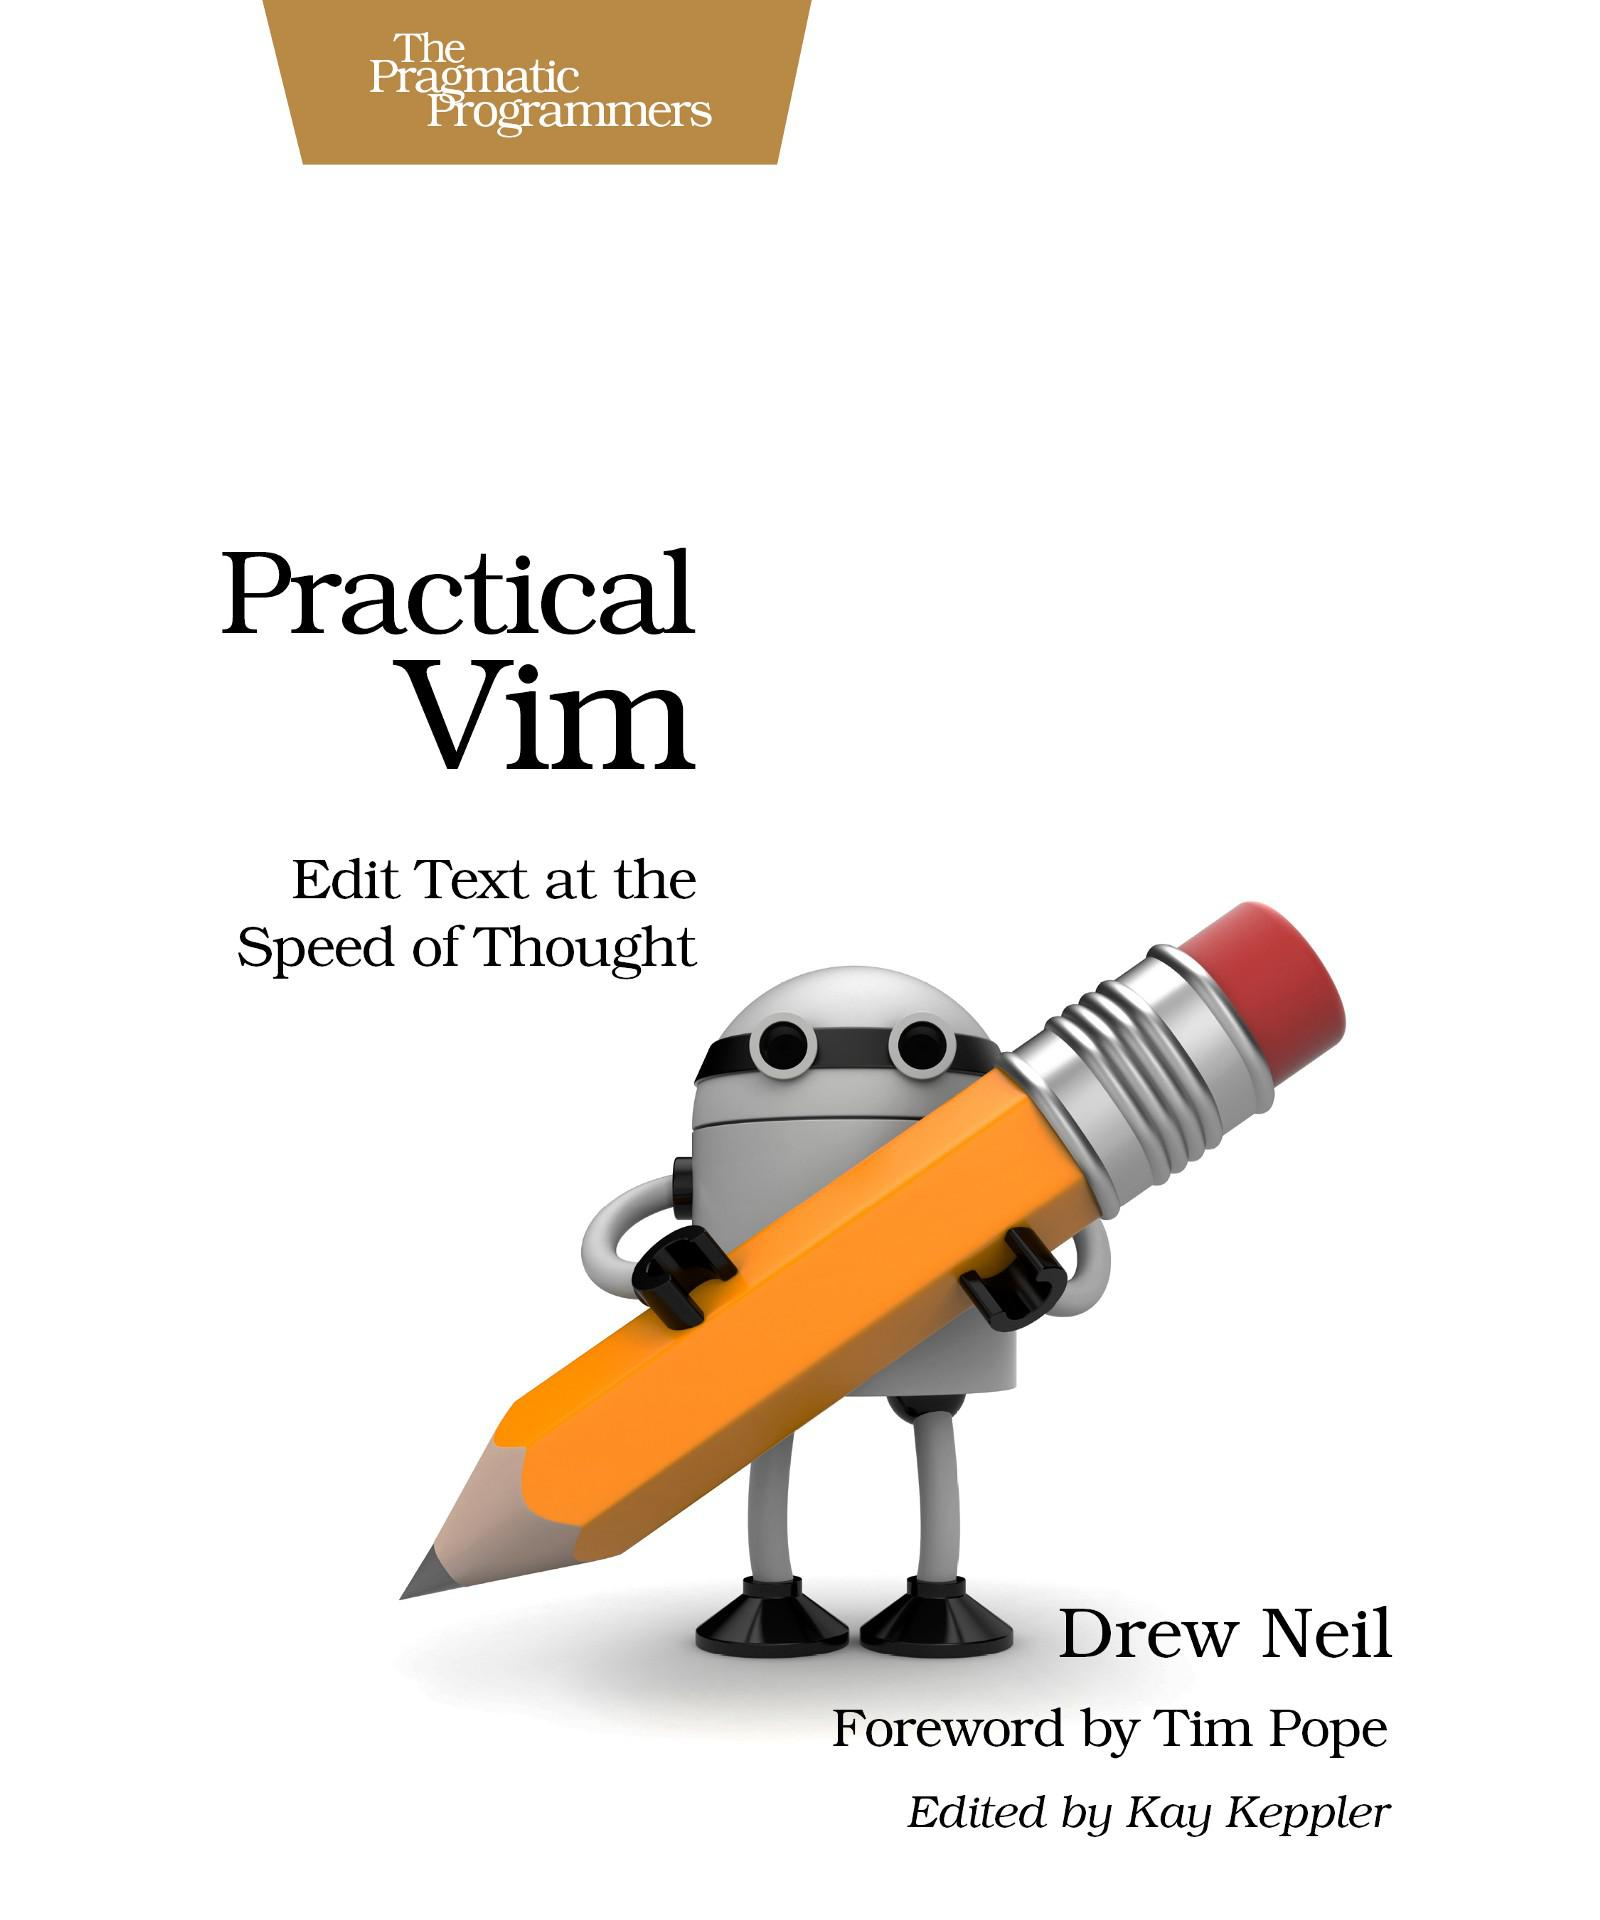 /images/practical_vim.jpeg